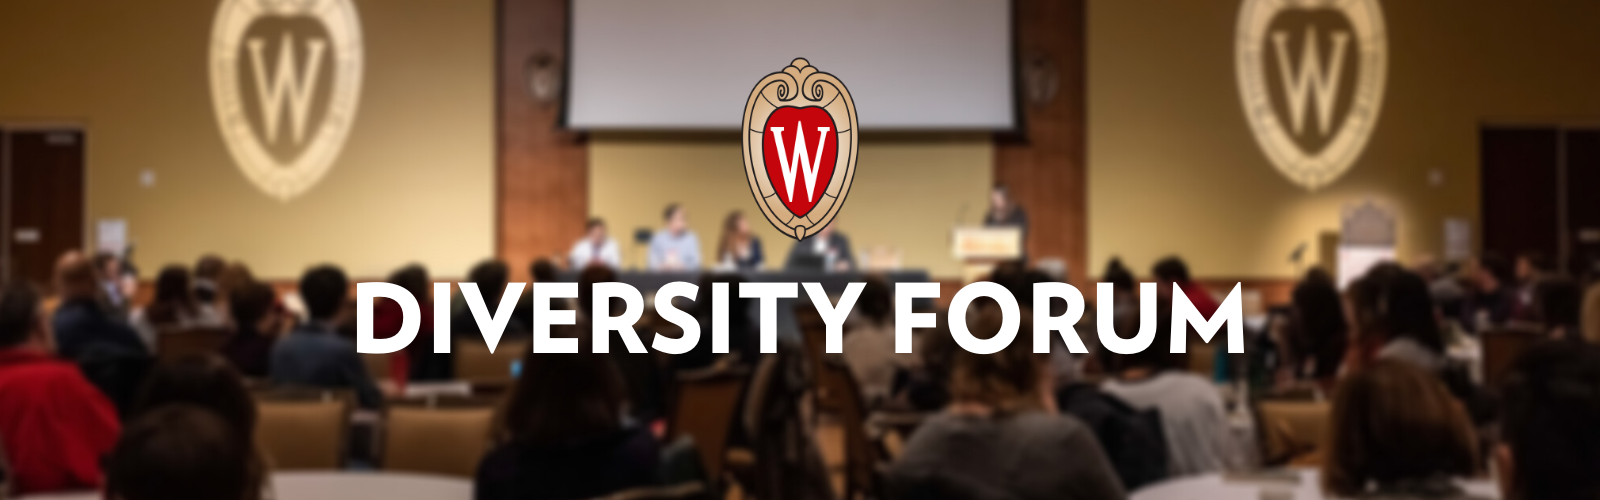 """A intentionally blurred image of a conference room with UW crests and the word """"Diversity Forum"""" superimposed in bold white letters."""